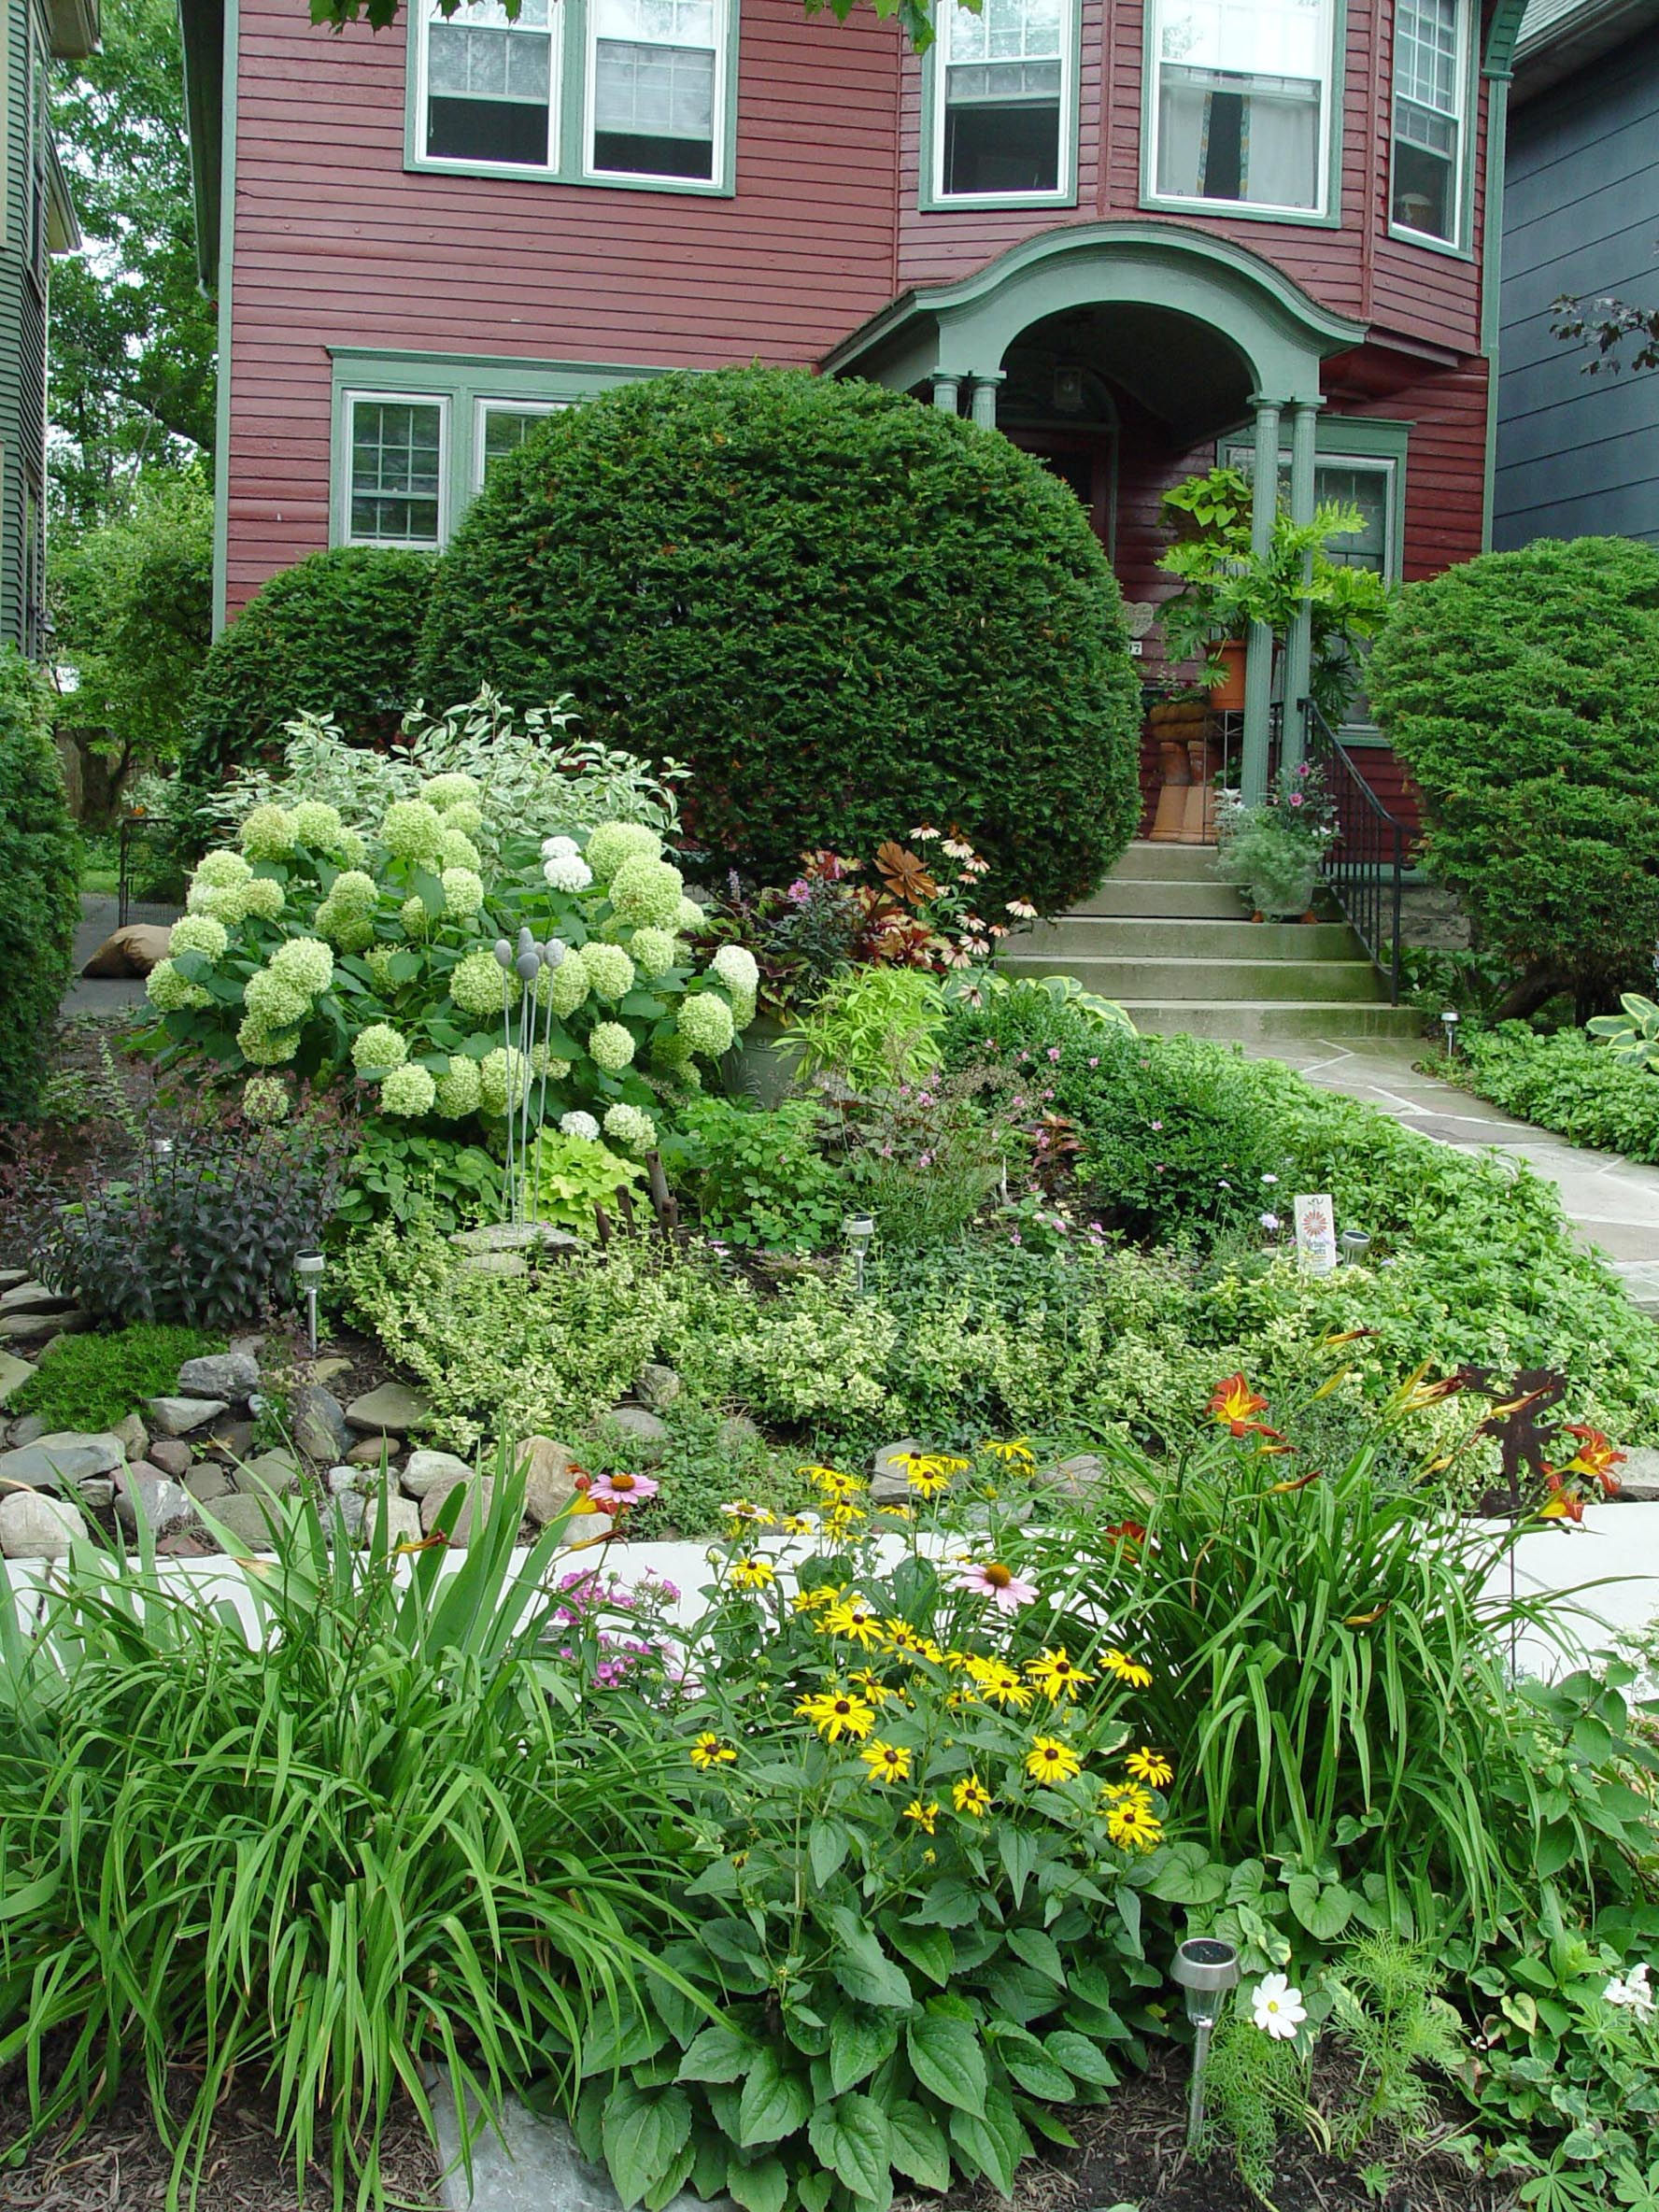 Blooming Neighbors Garden Housecalls: yard and garden